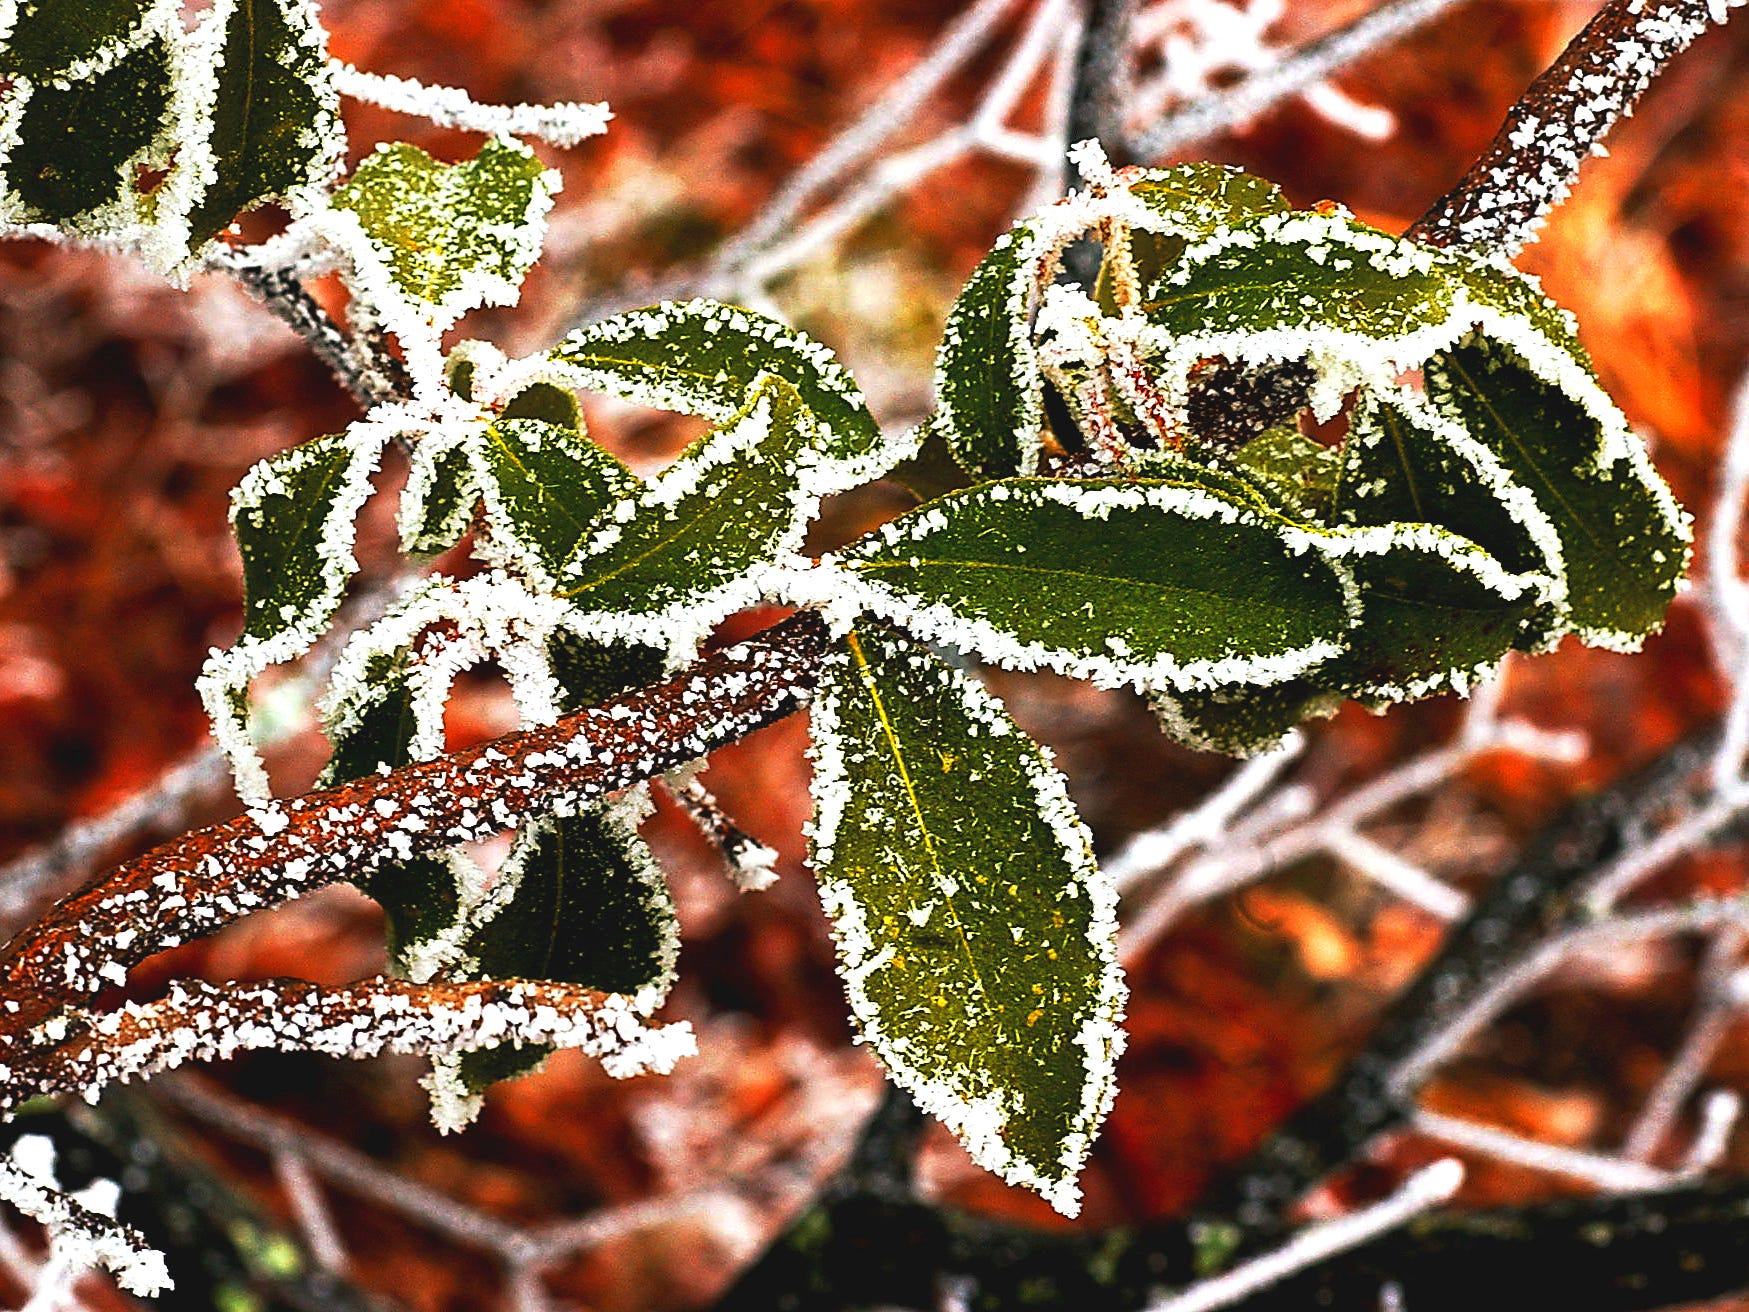 When clouds freeze on the trees, and bushes it forms the phenomenon is called rime ice. In Cambell County high above the Oneida exit along Interstate 75 in Campbell Co. near a service road to a water tower and cellphone tower Rime Ice formed recently on a Mountain Laurel bush.